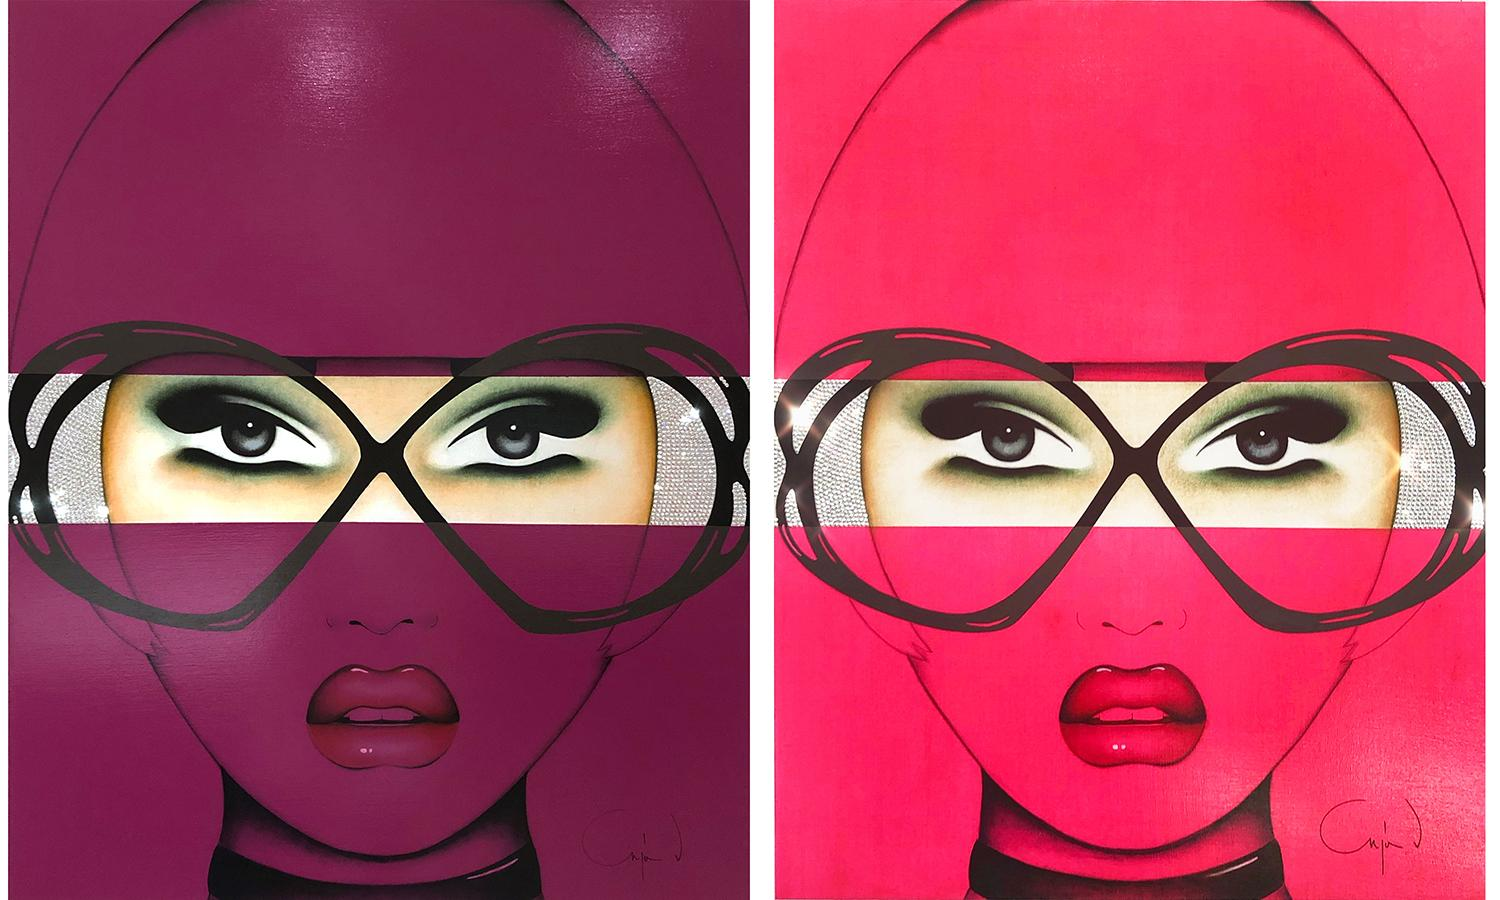 For Your Eyes Only, Anja Van Herle, Pink & Purple Diptych, Figurative, Portrait